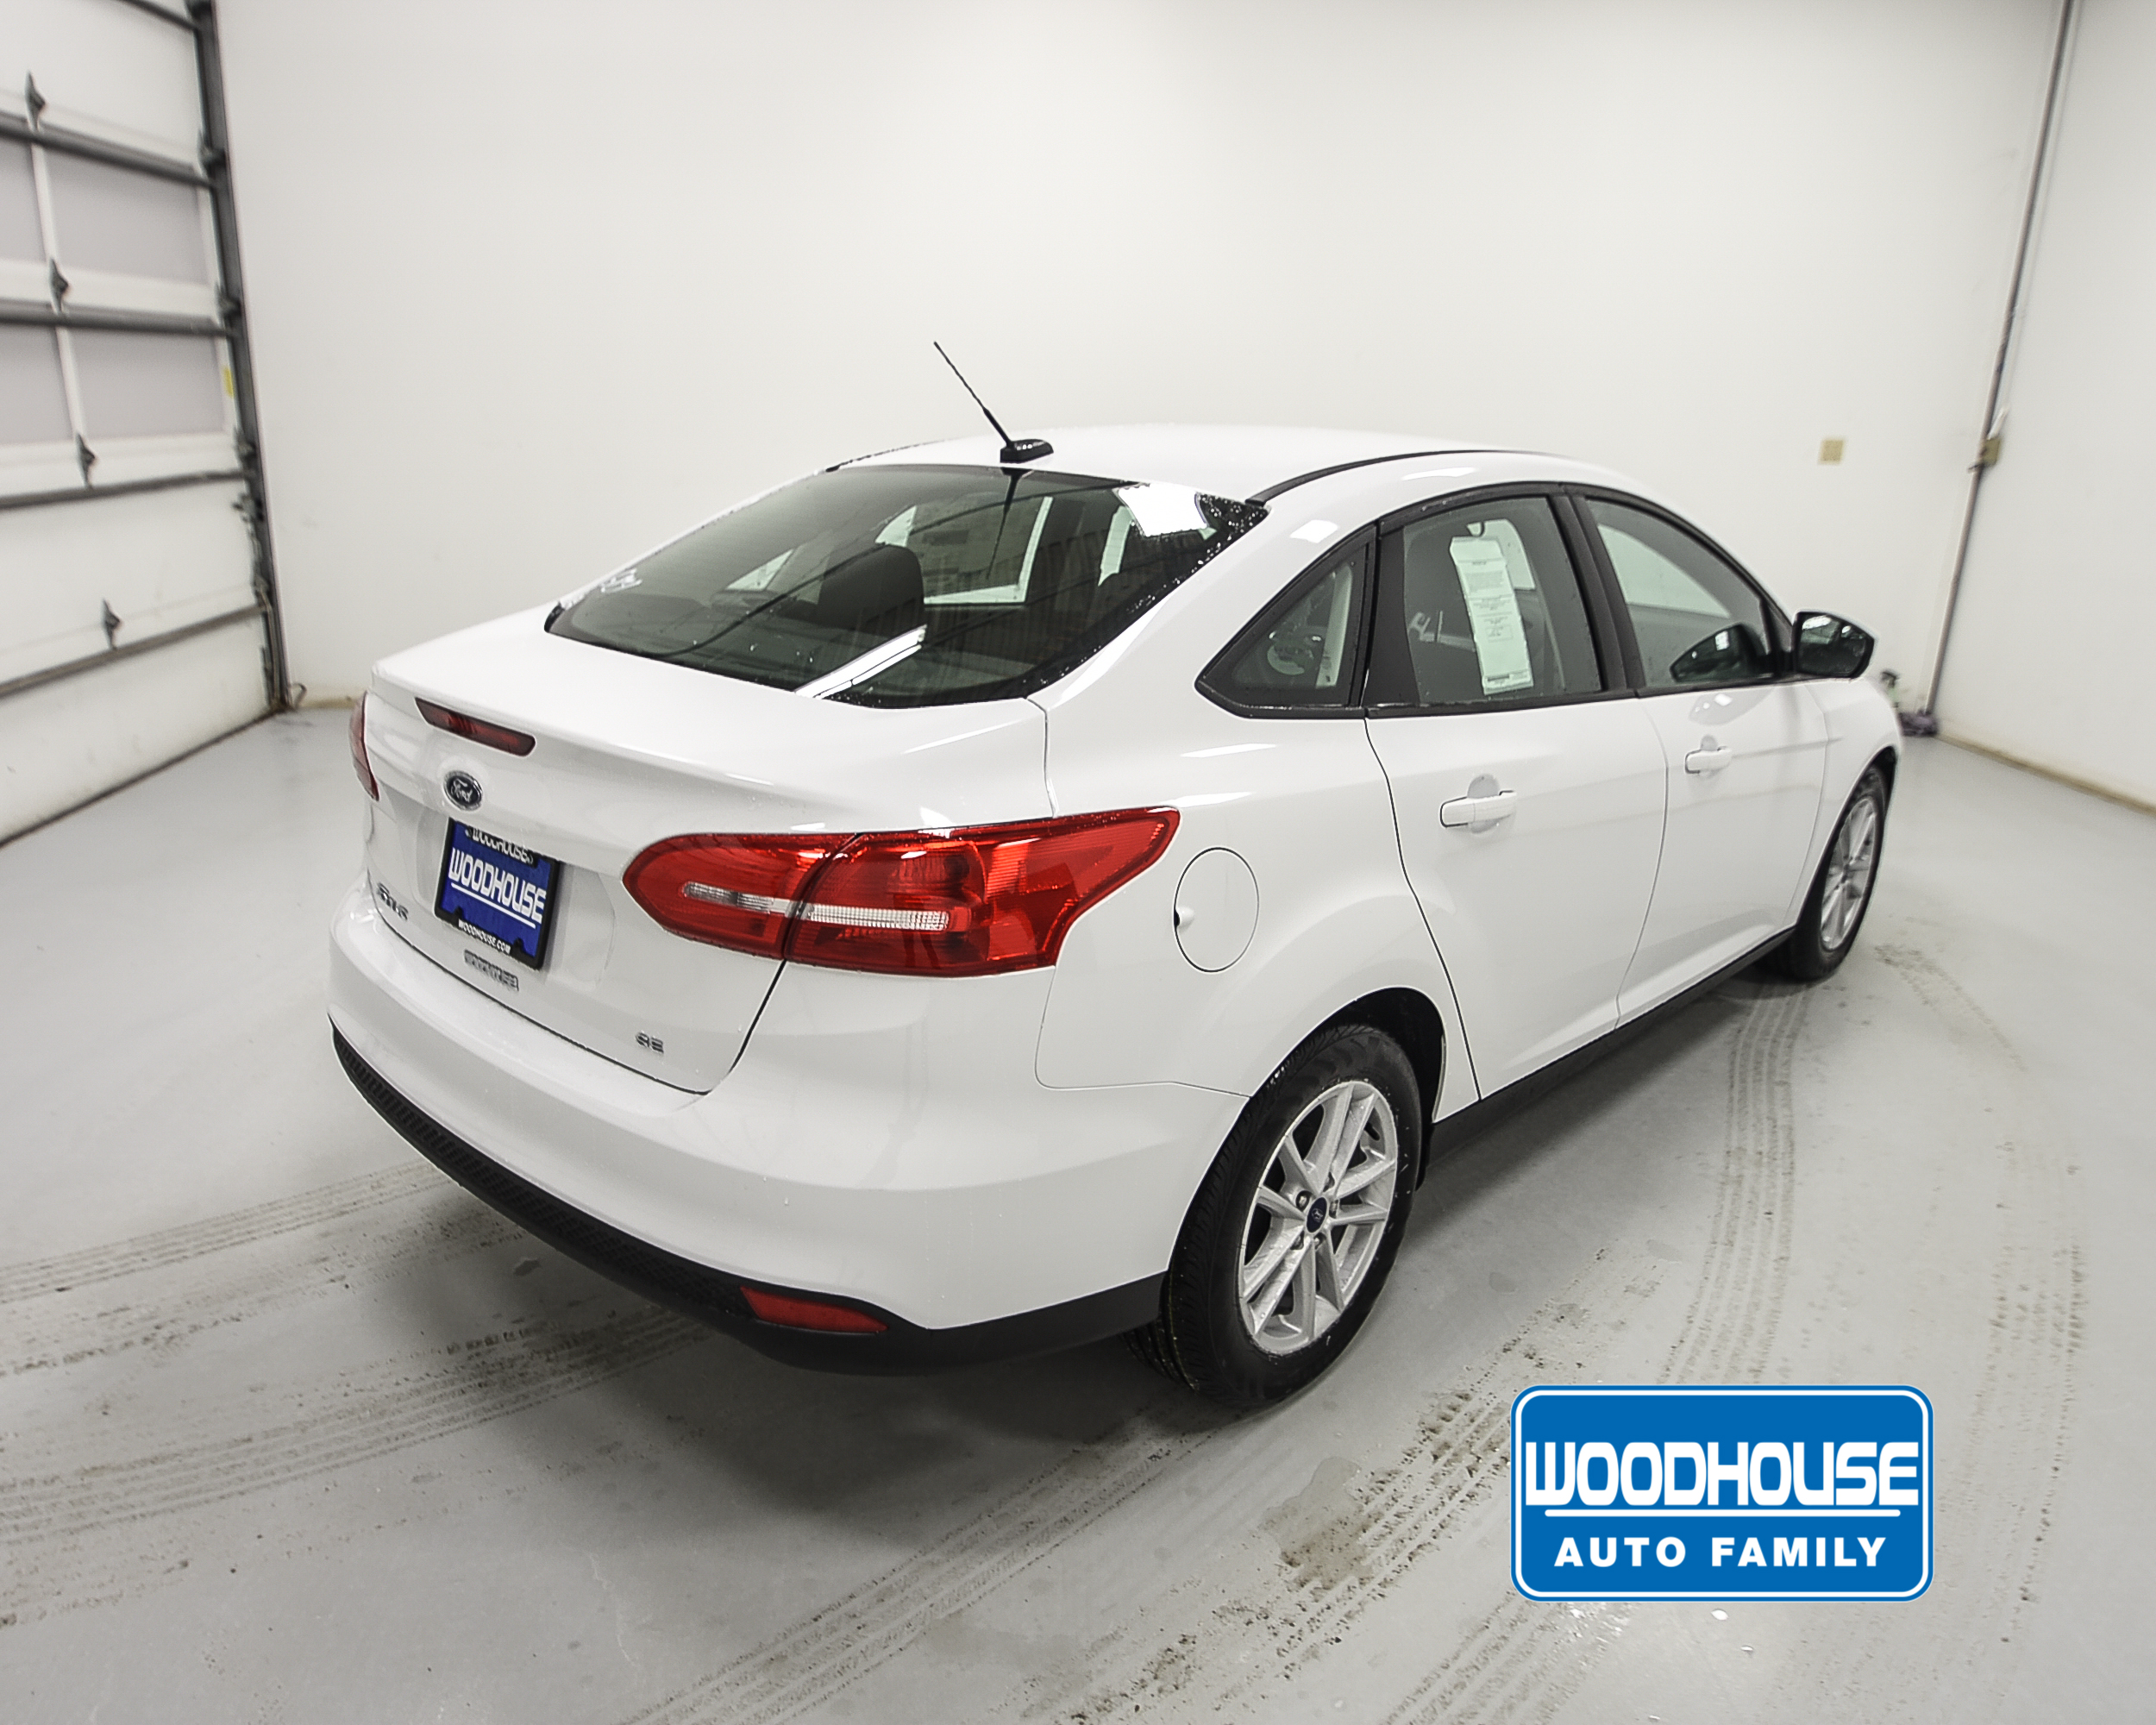 Ford Focus For Sale Woodhouse Auto